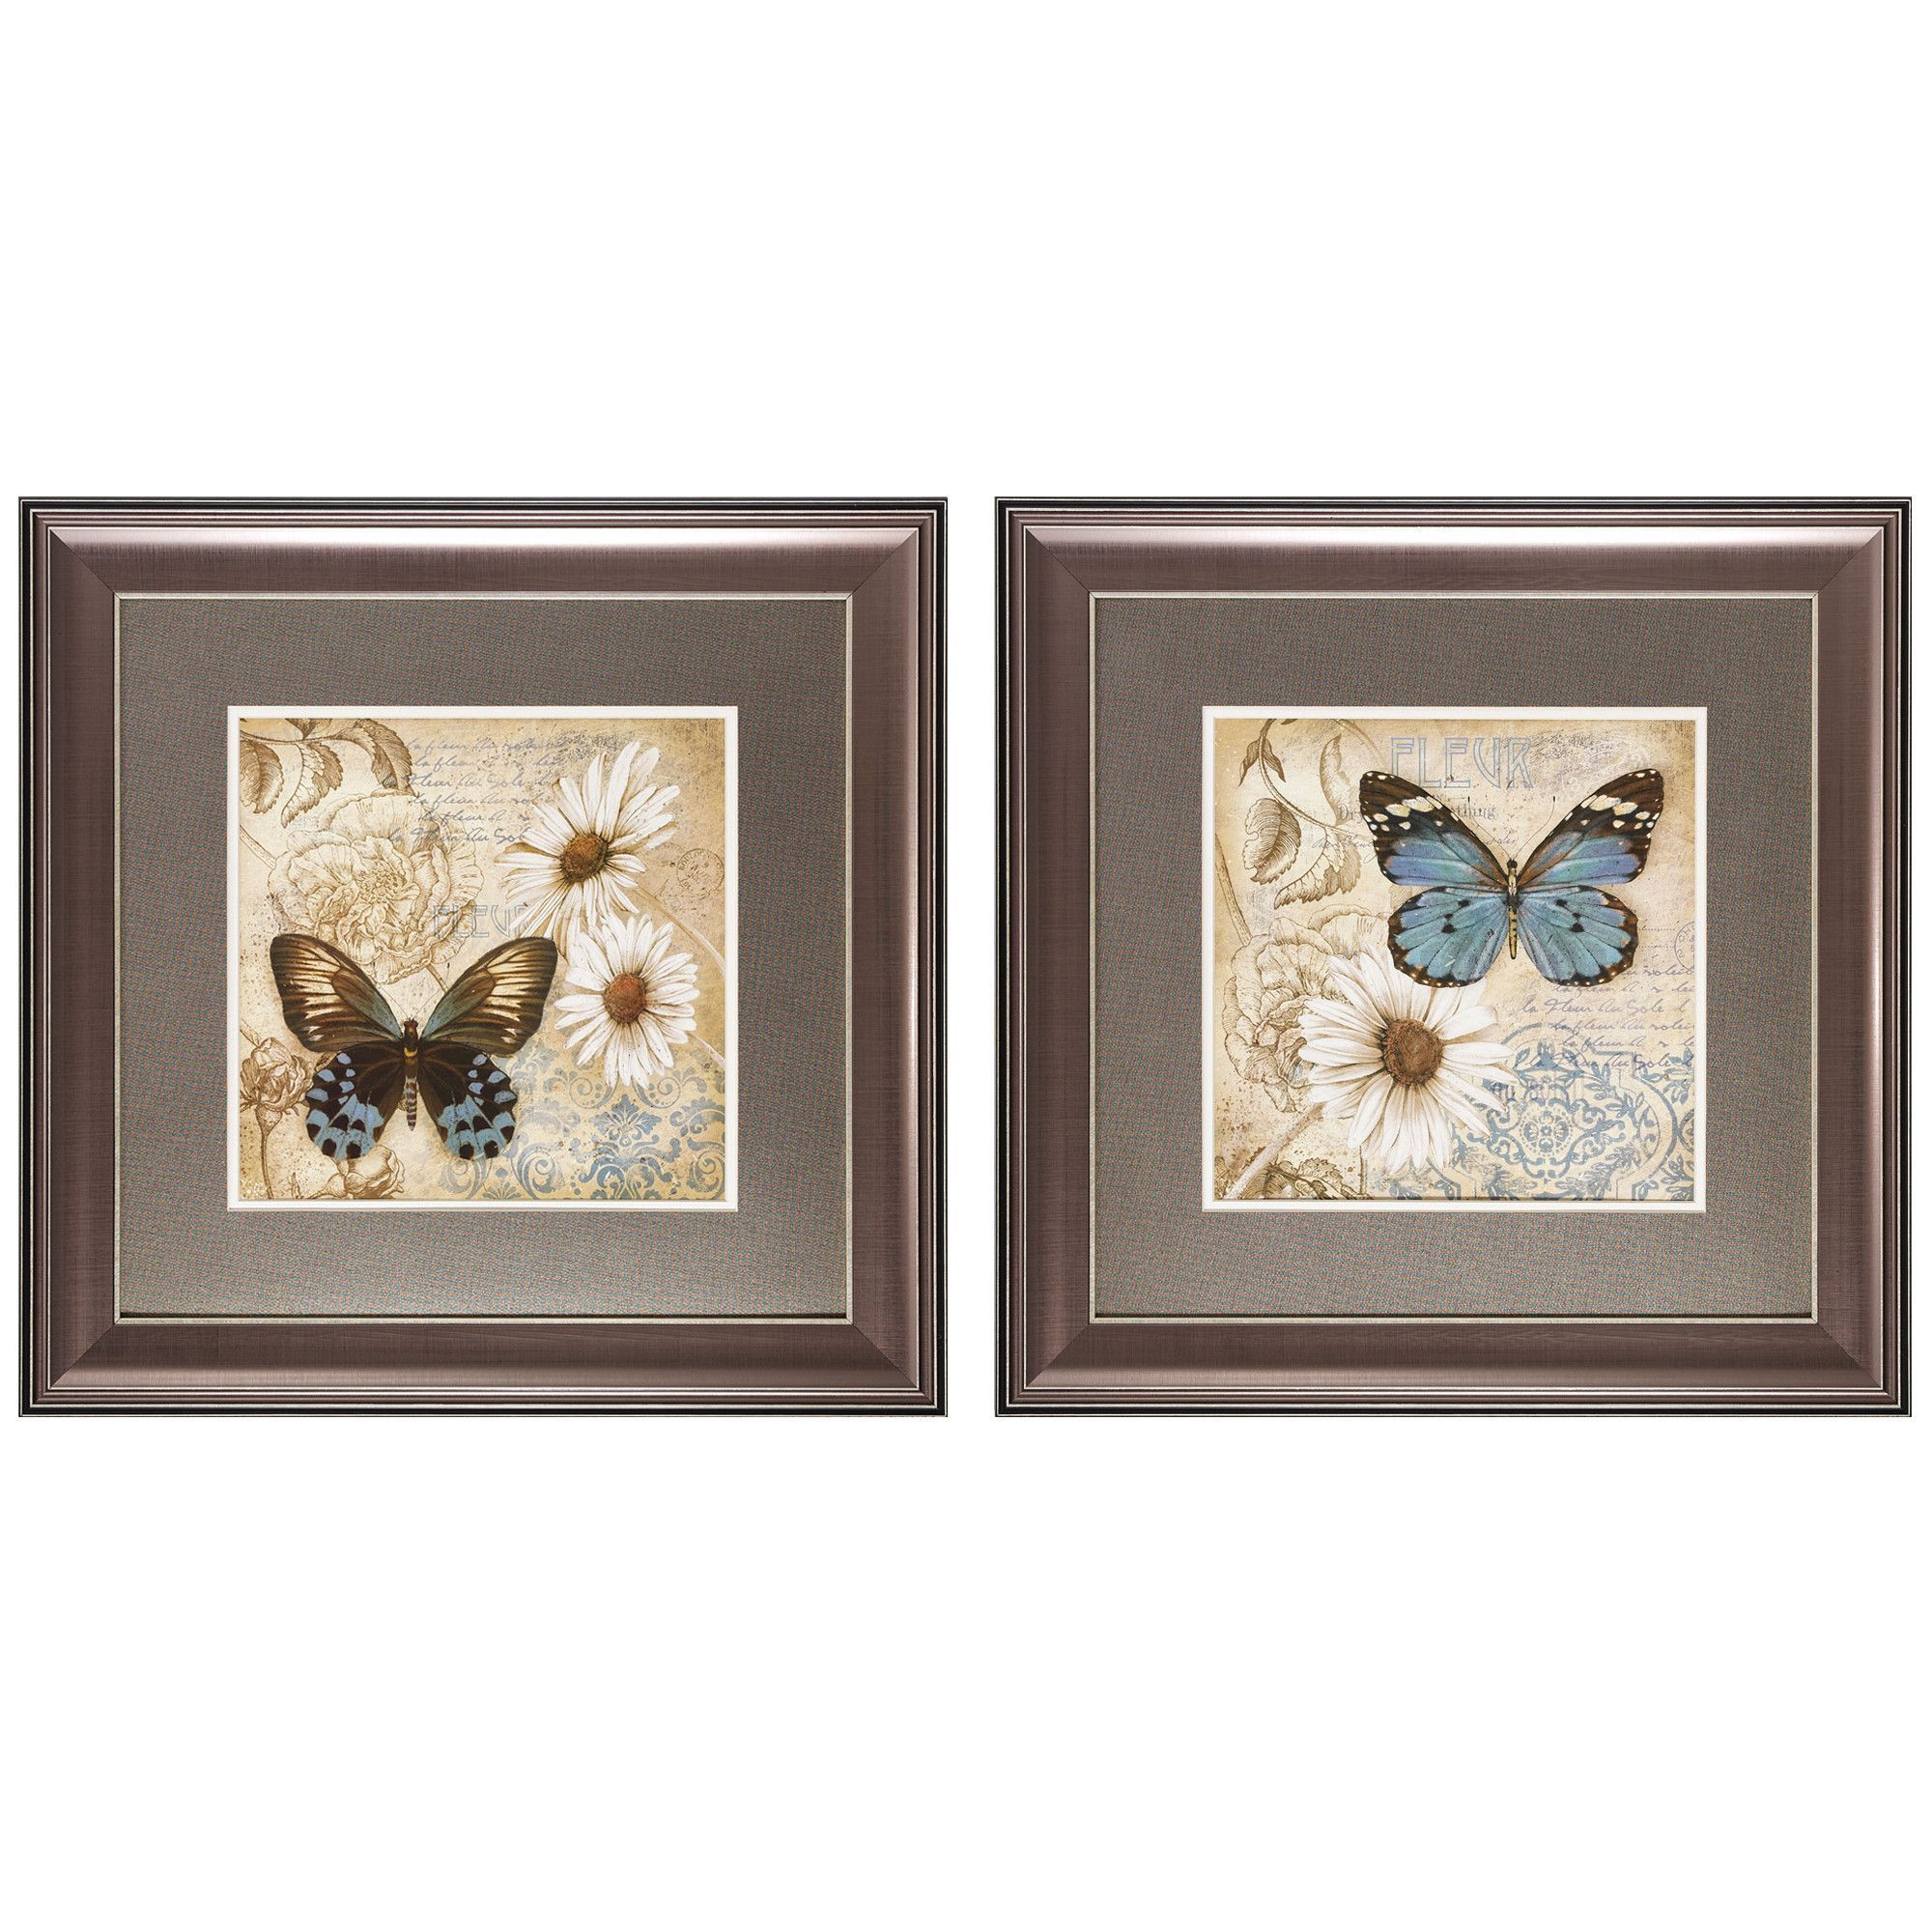 Garden iii piece framed painting print set products pinterest